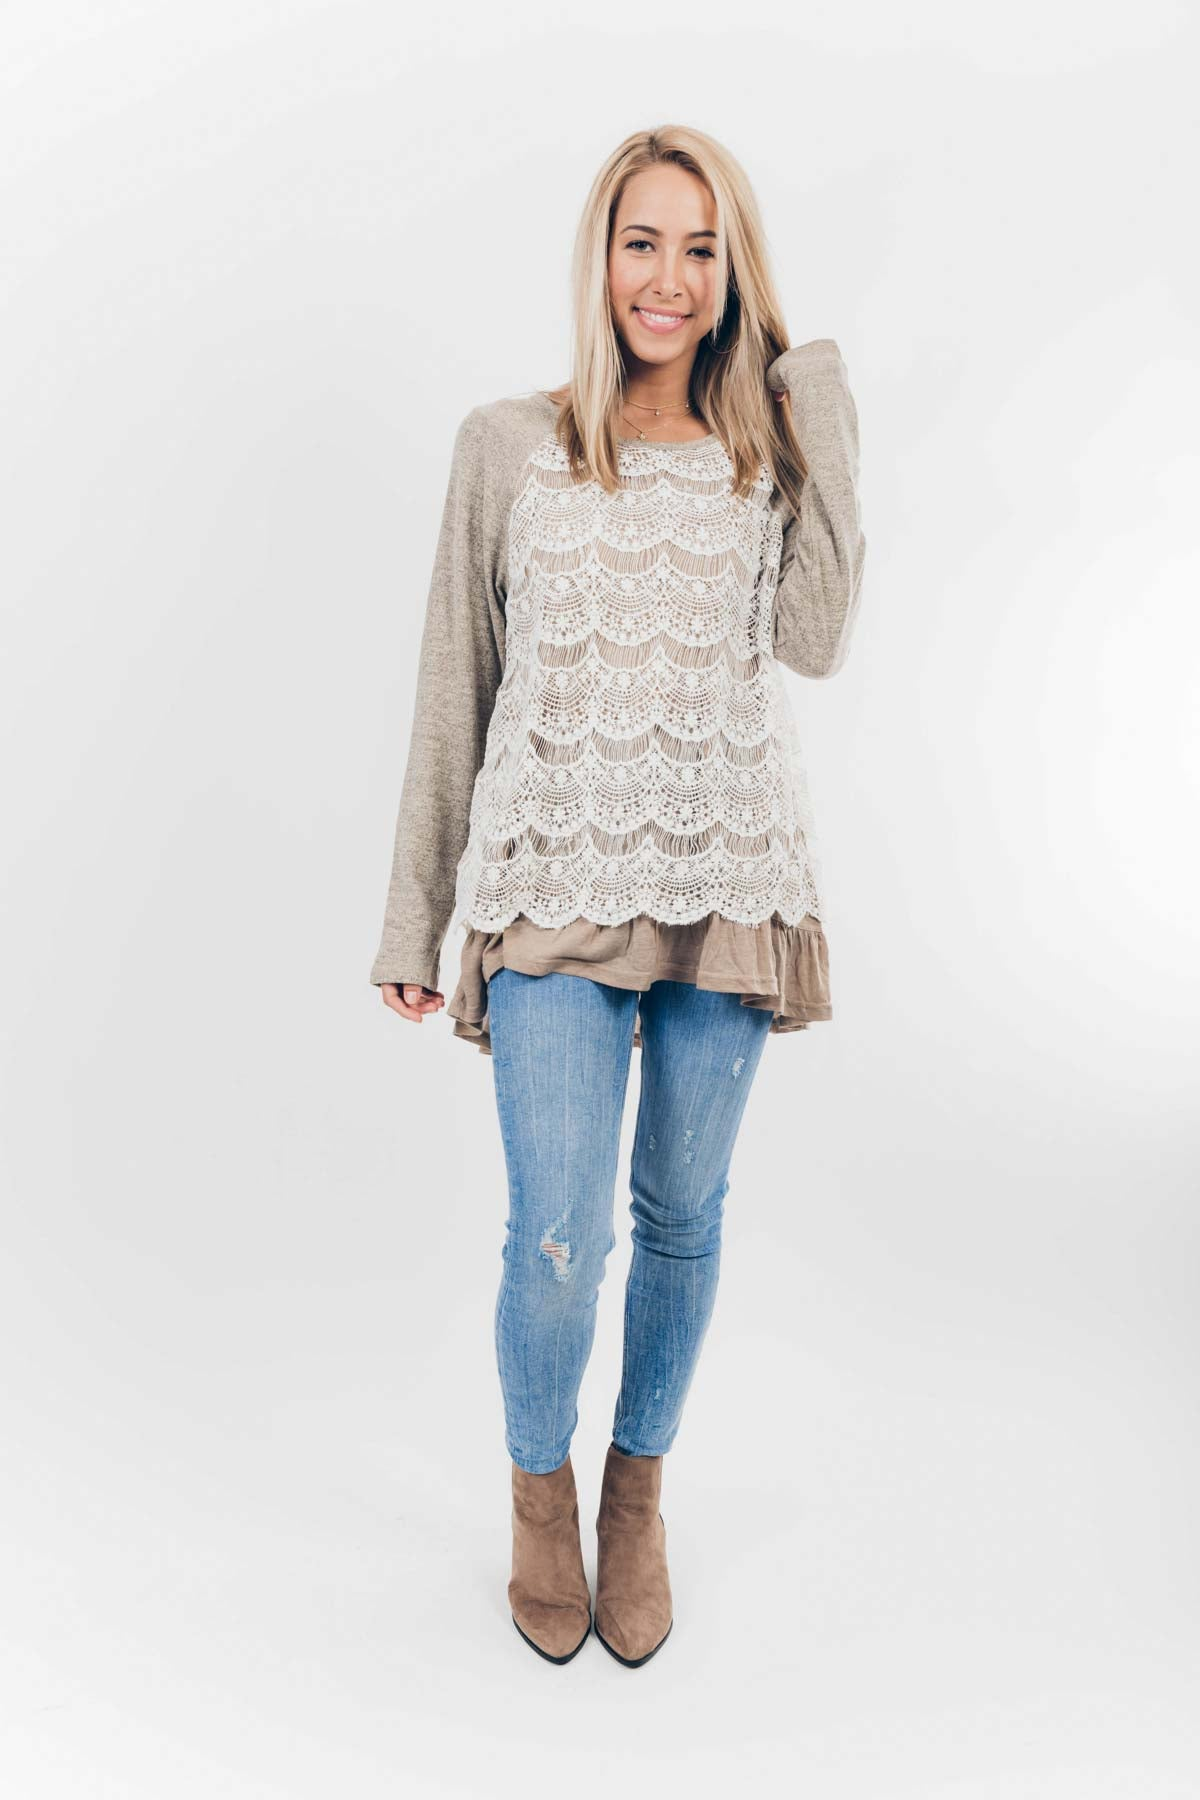 Chilly but Frilly Sweater in Mocha